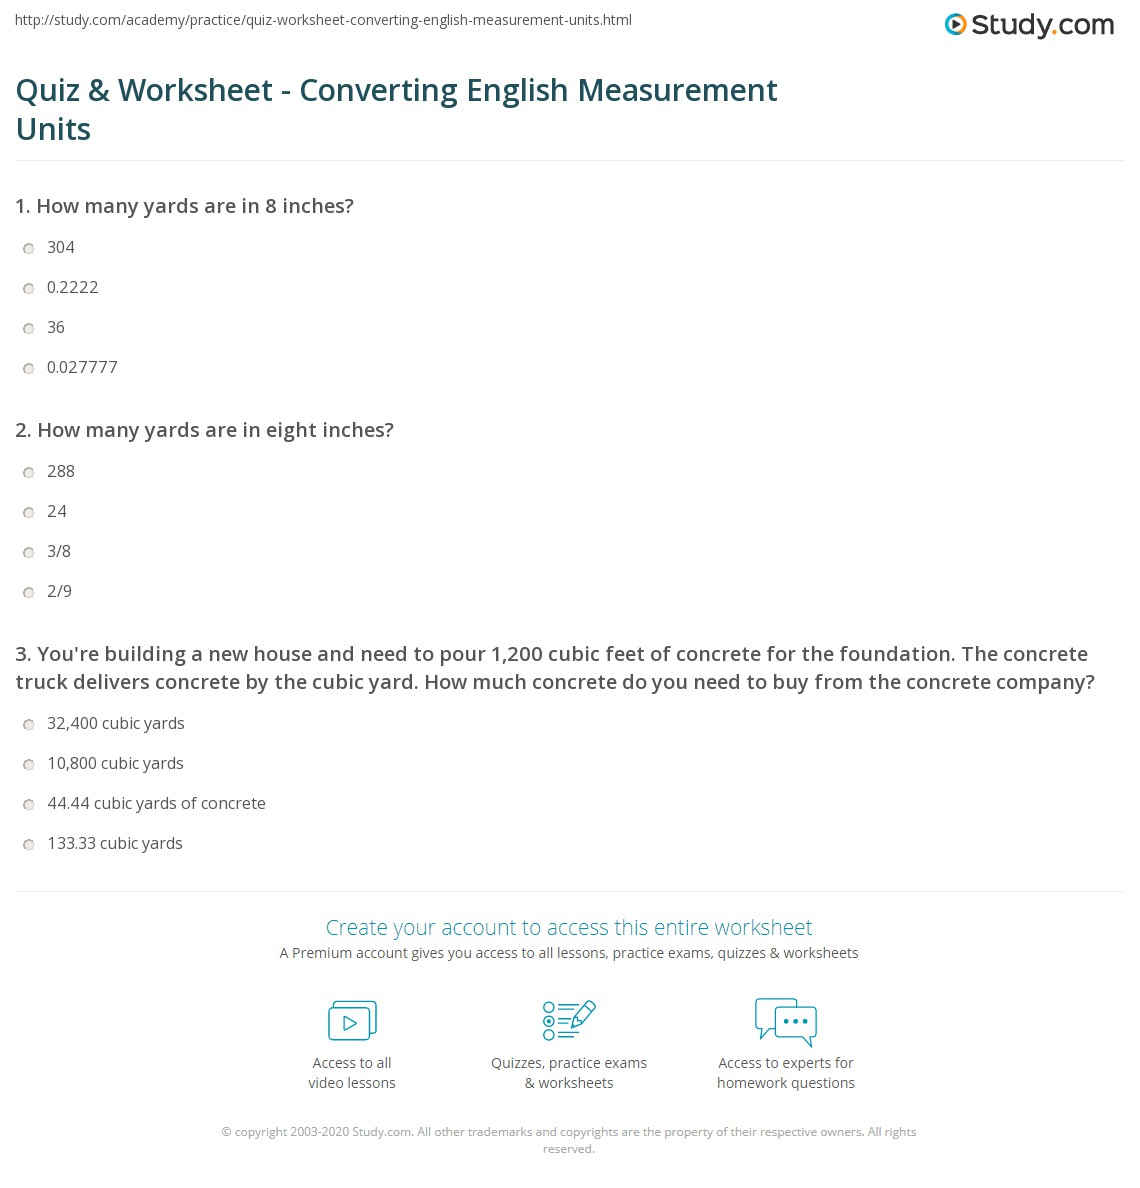 Worksheets Convert Measurements Worksheet quiz worksheet converting english measurement units study com print how to convert in the system of worksheet